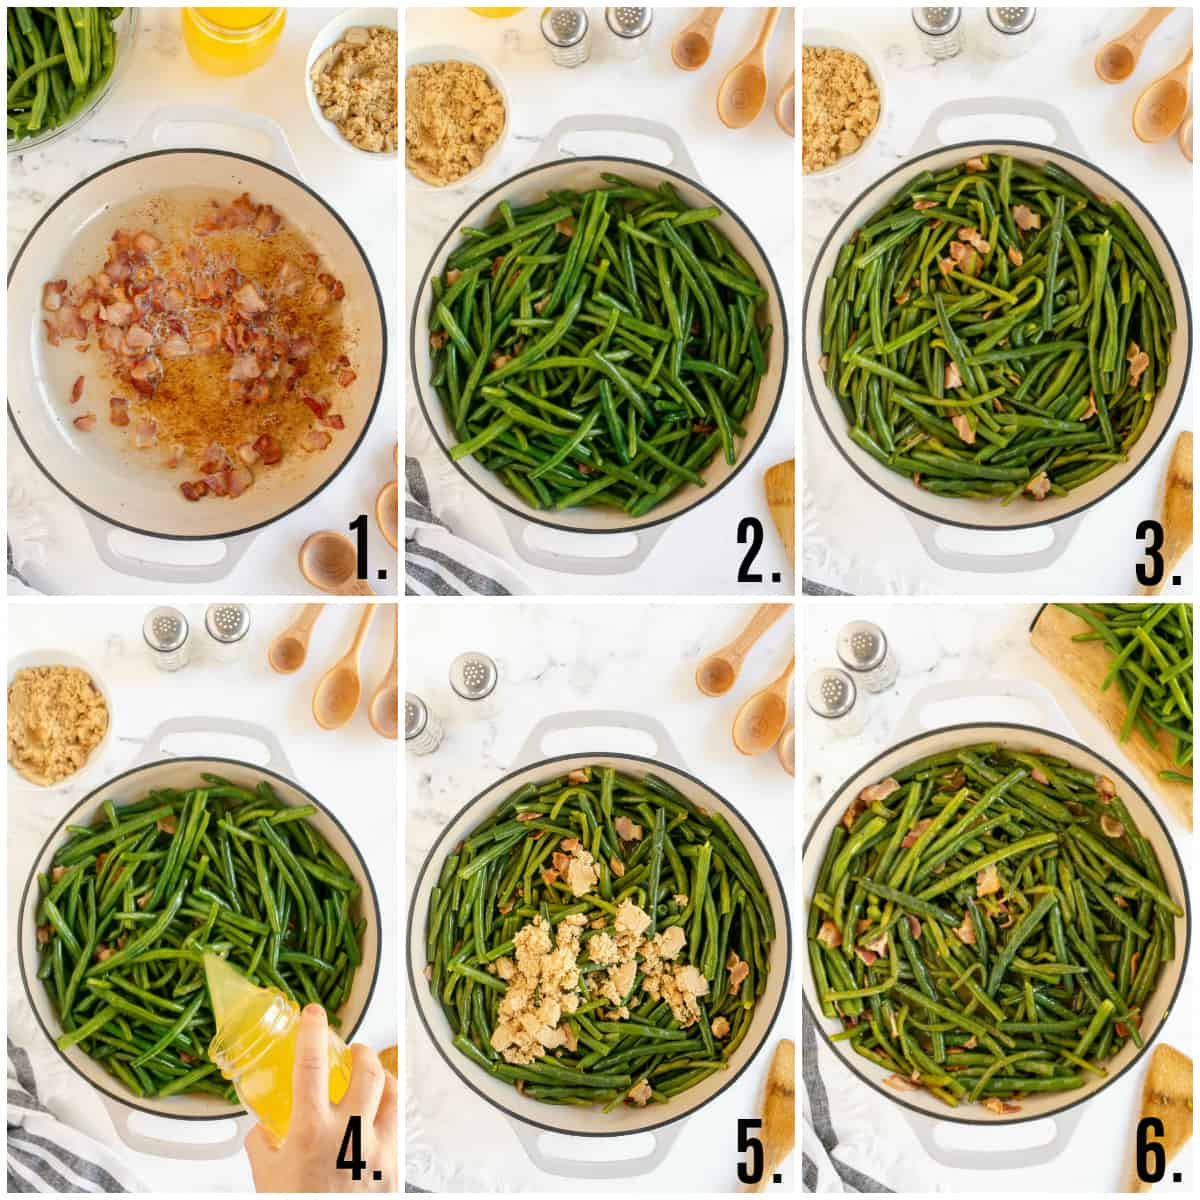 Step by step photos of how to make Southern Style Green Beans